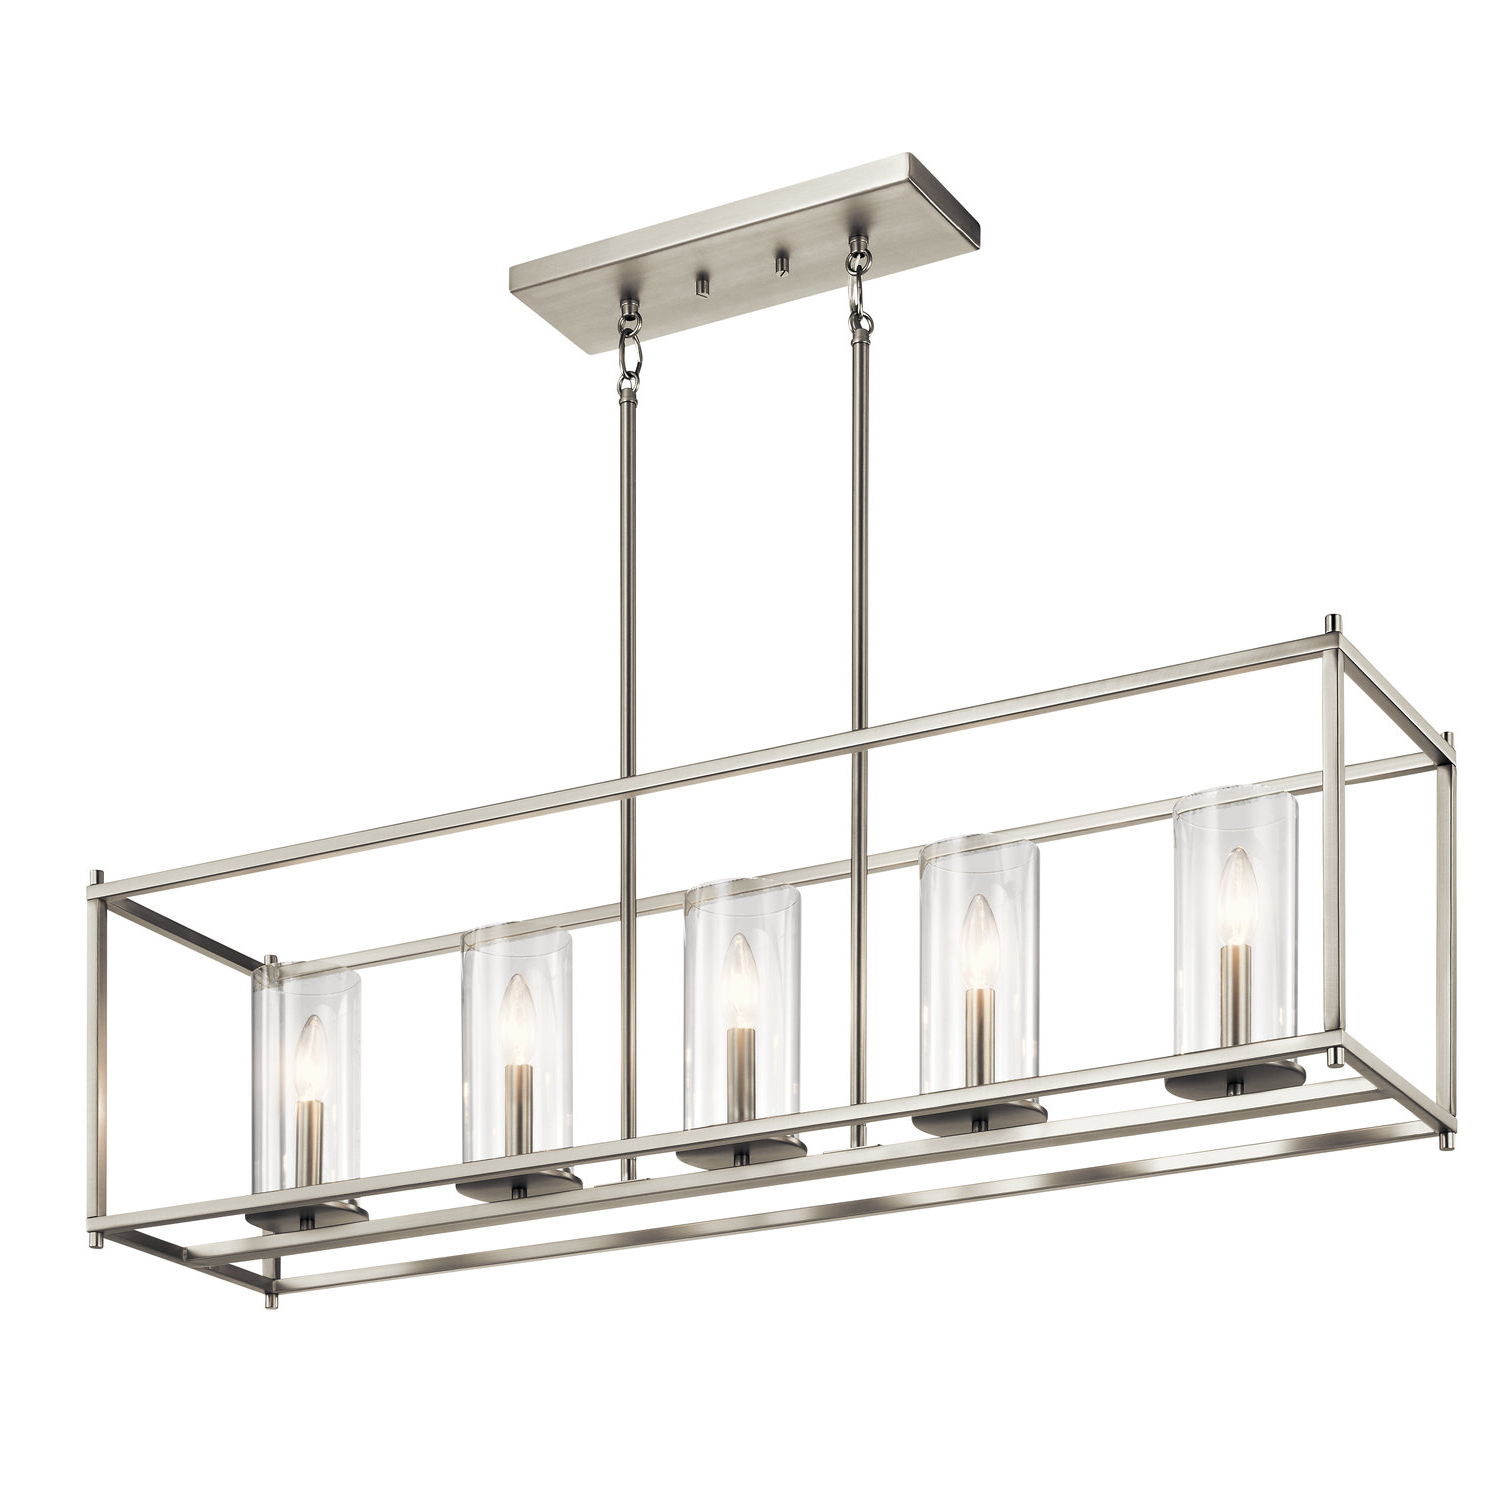 Zipcode Design Chelsie 5 Light Kitchen Island Pendant Intended For Famous Thorne 5 Light Kitchen Island Pendants (Gallery 20 of 20)